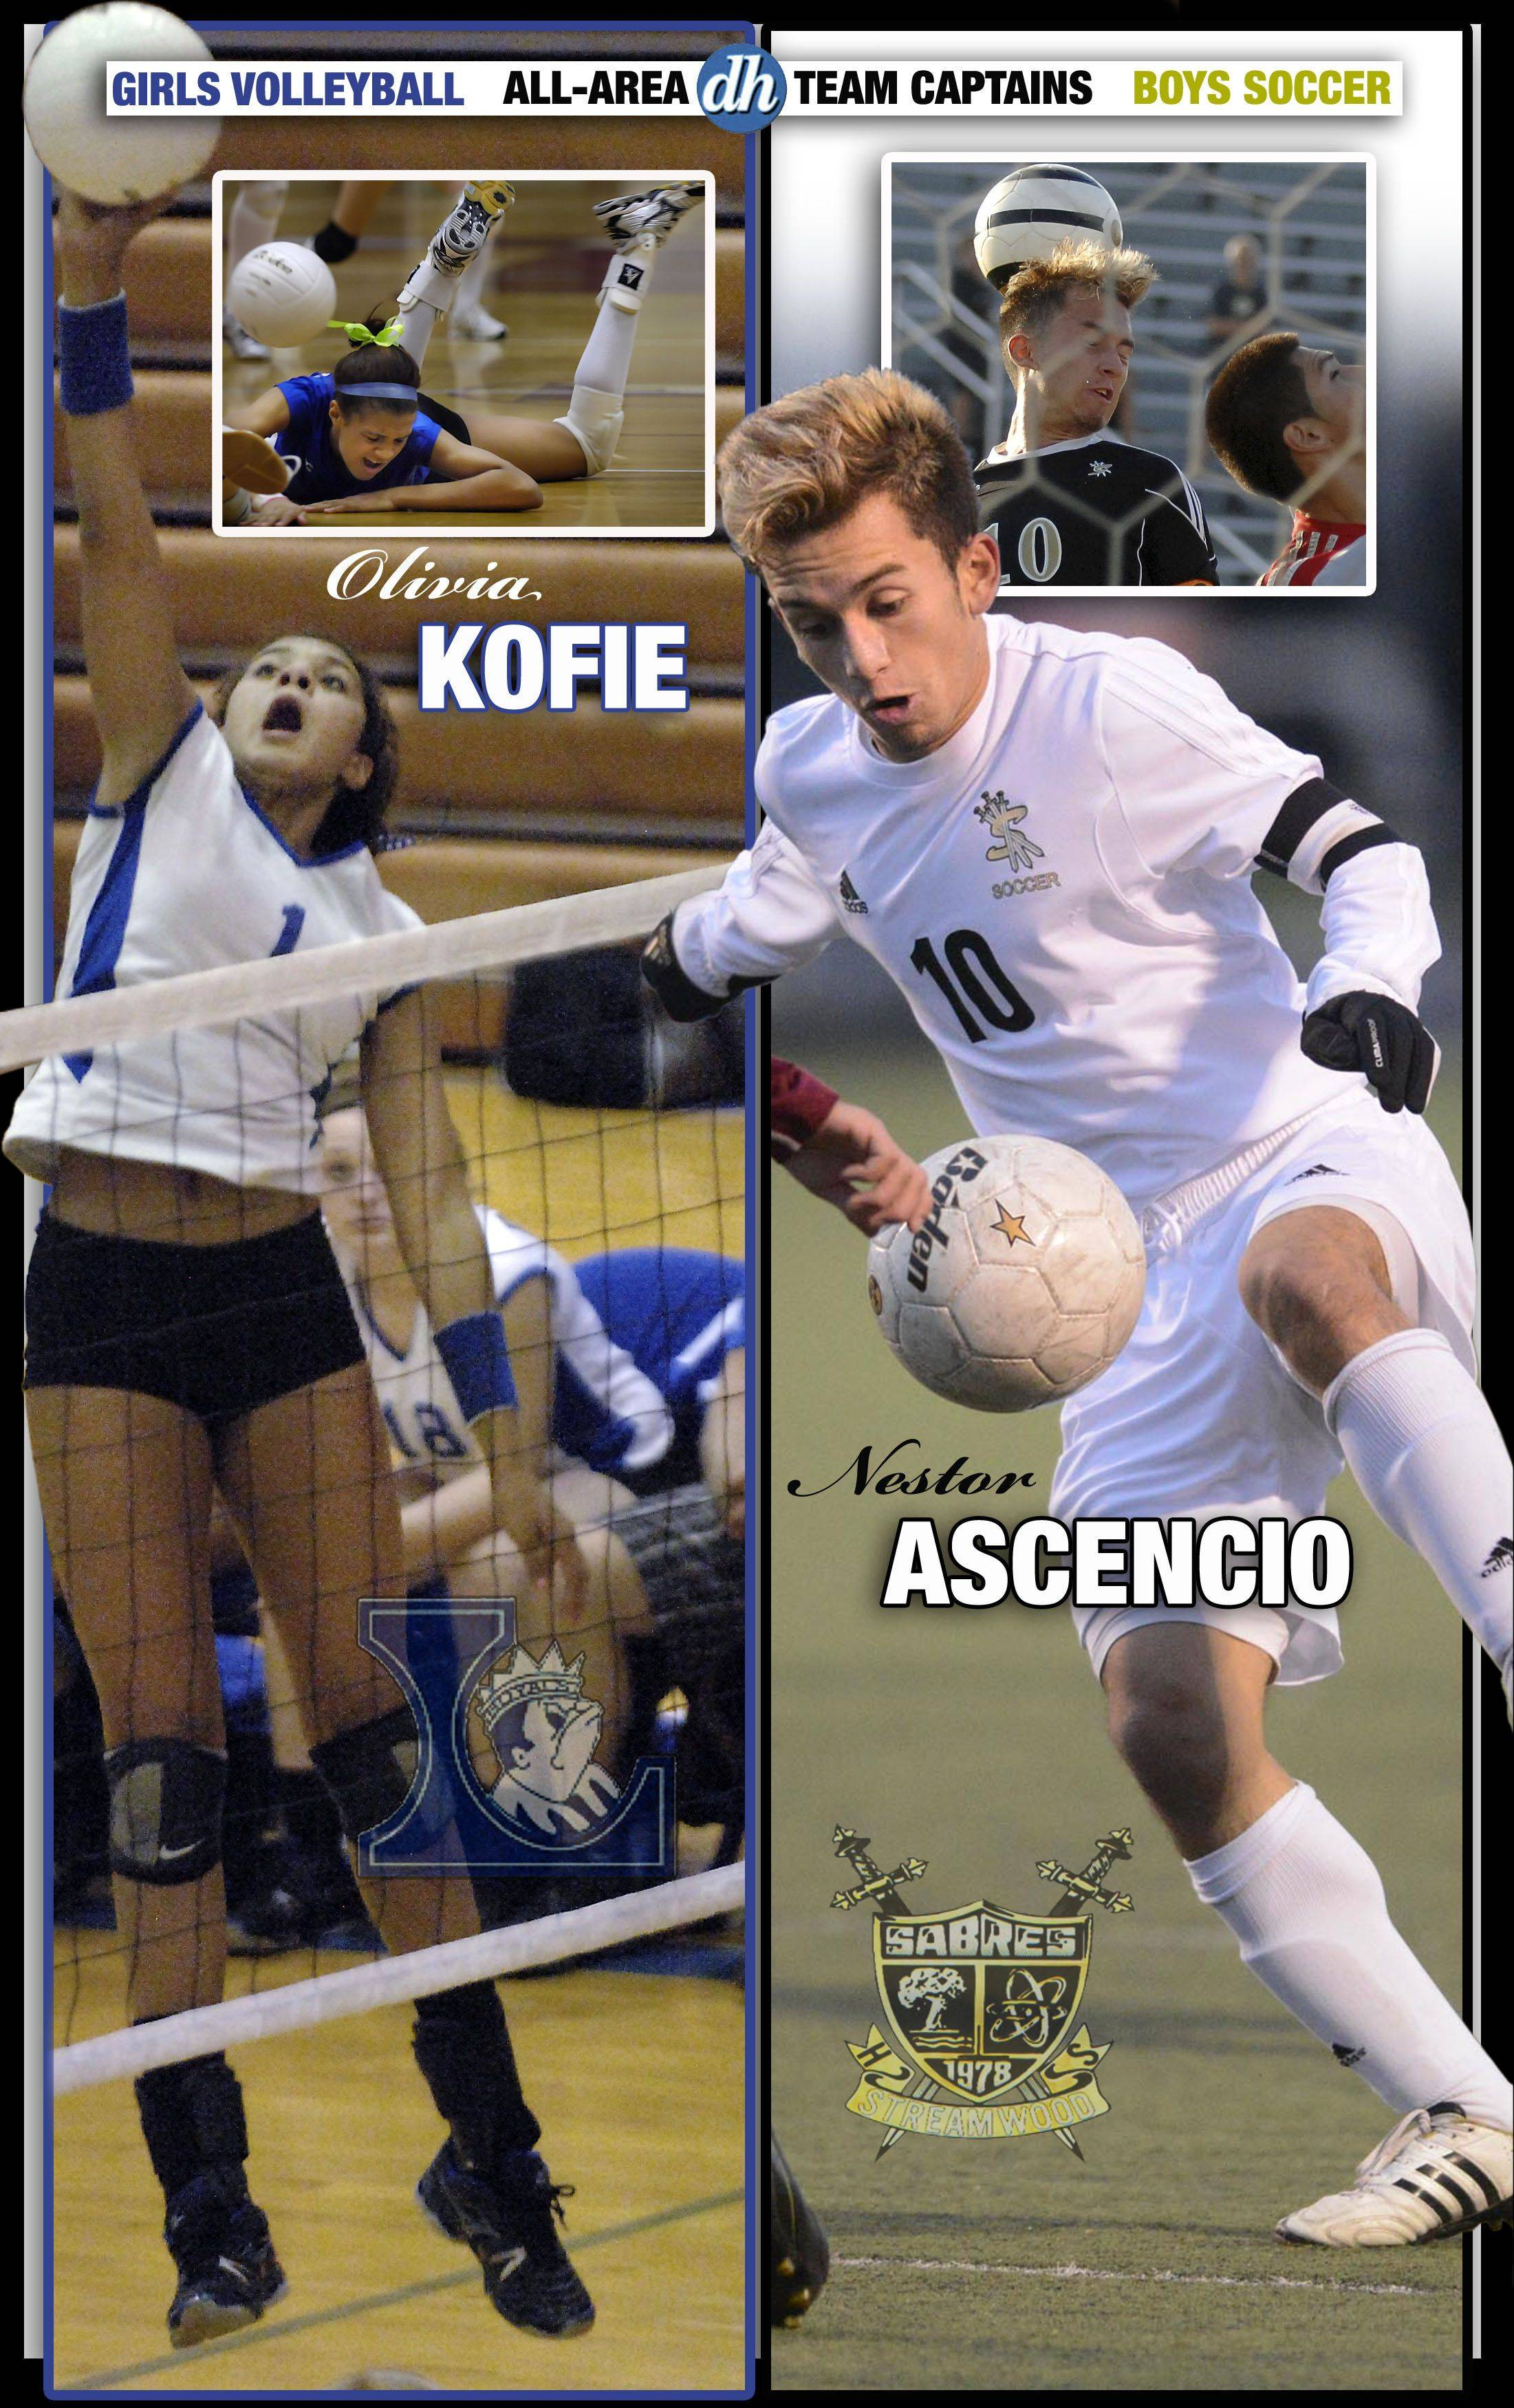 Boys soccer and Girls volleyball All-Area Team Captains in the Fox Valley are Olivia Kofie of Larkin and Nestor Ascencio of Streamwood.